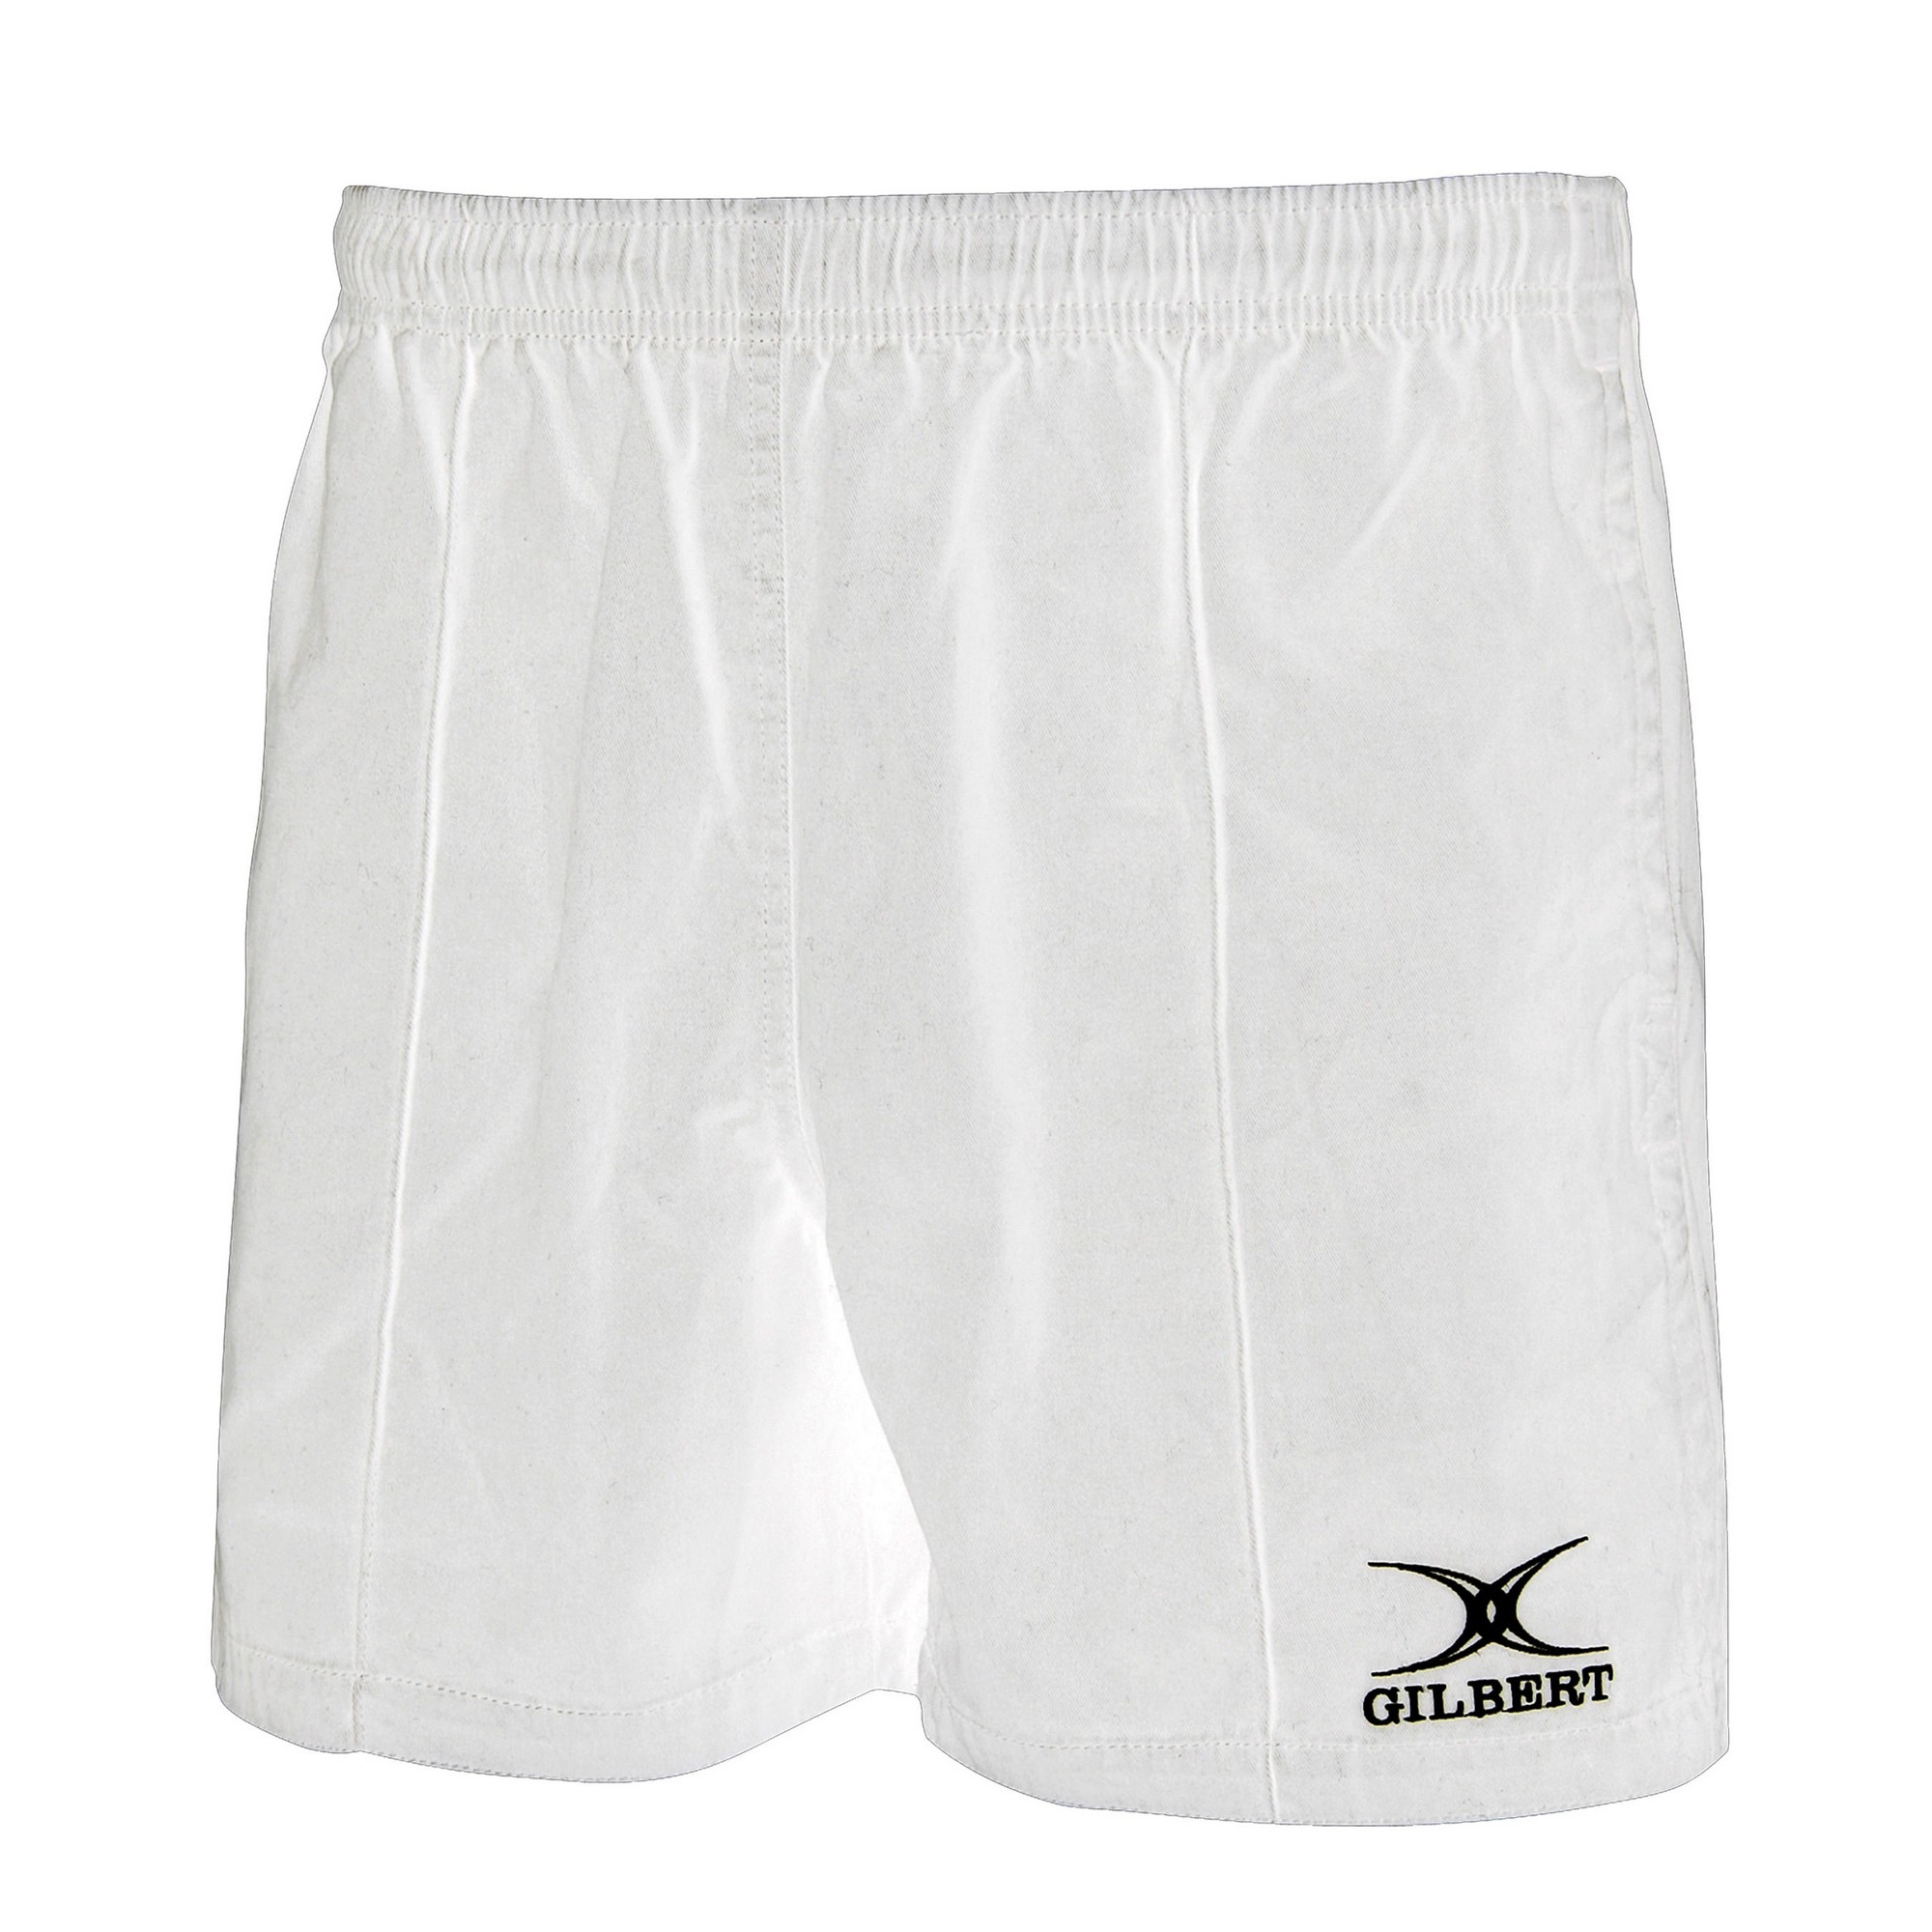 Gilbert Rugby Childrens/Kids Kiwi Pro Rugby Shorts (7-8 Years) (White)